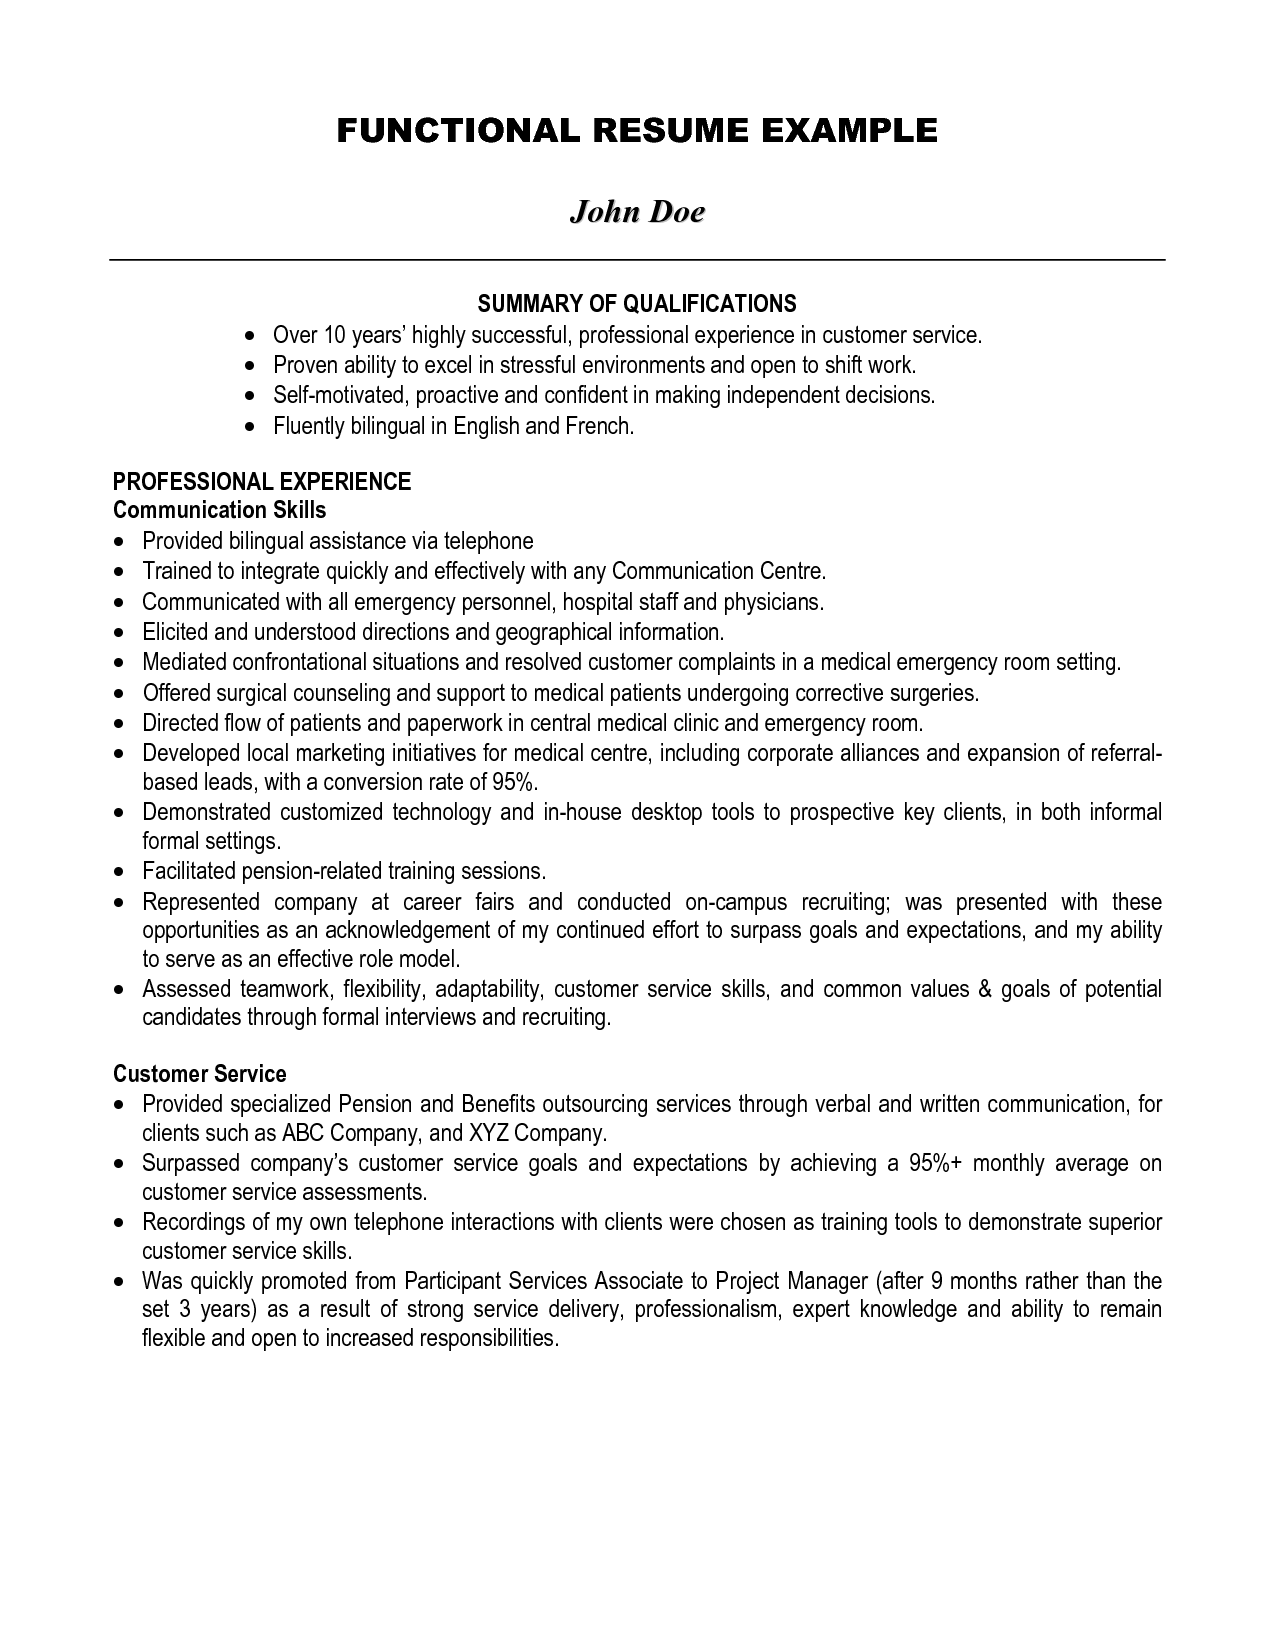 Example of Statement of Qualification Resume Summary Of Qualifications Samples Gallery Photos